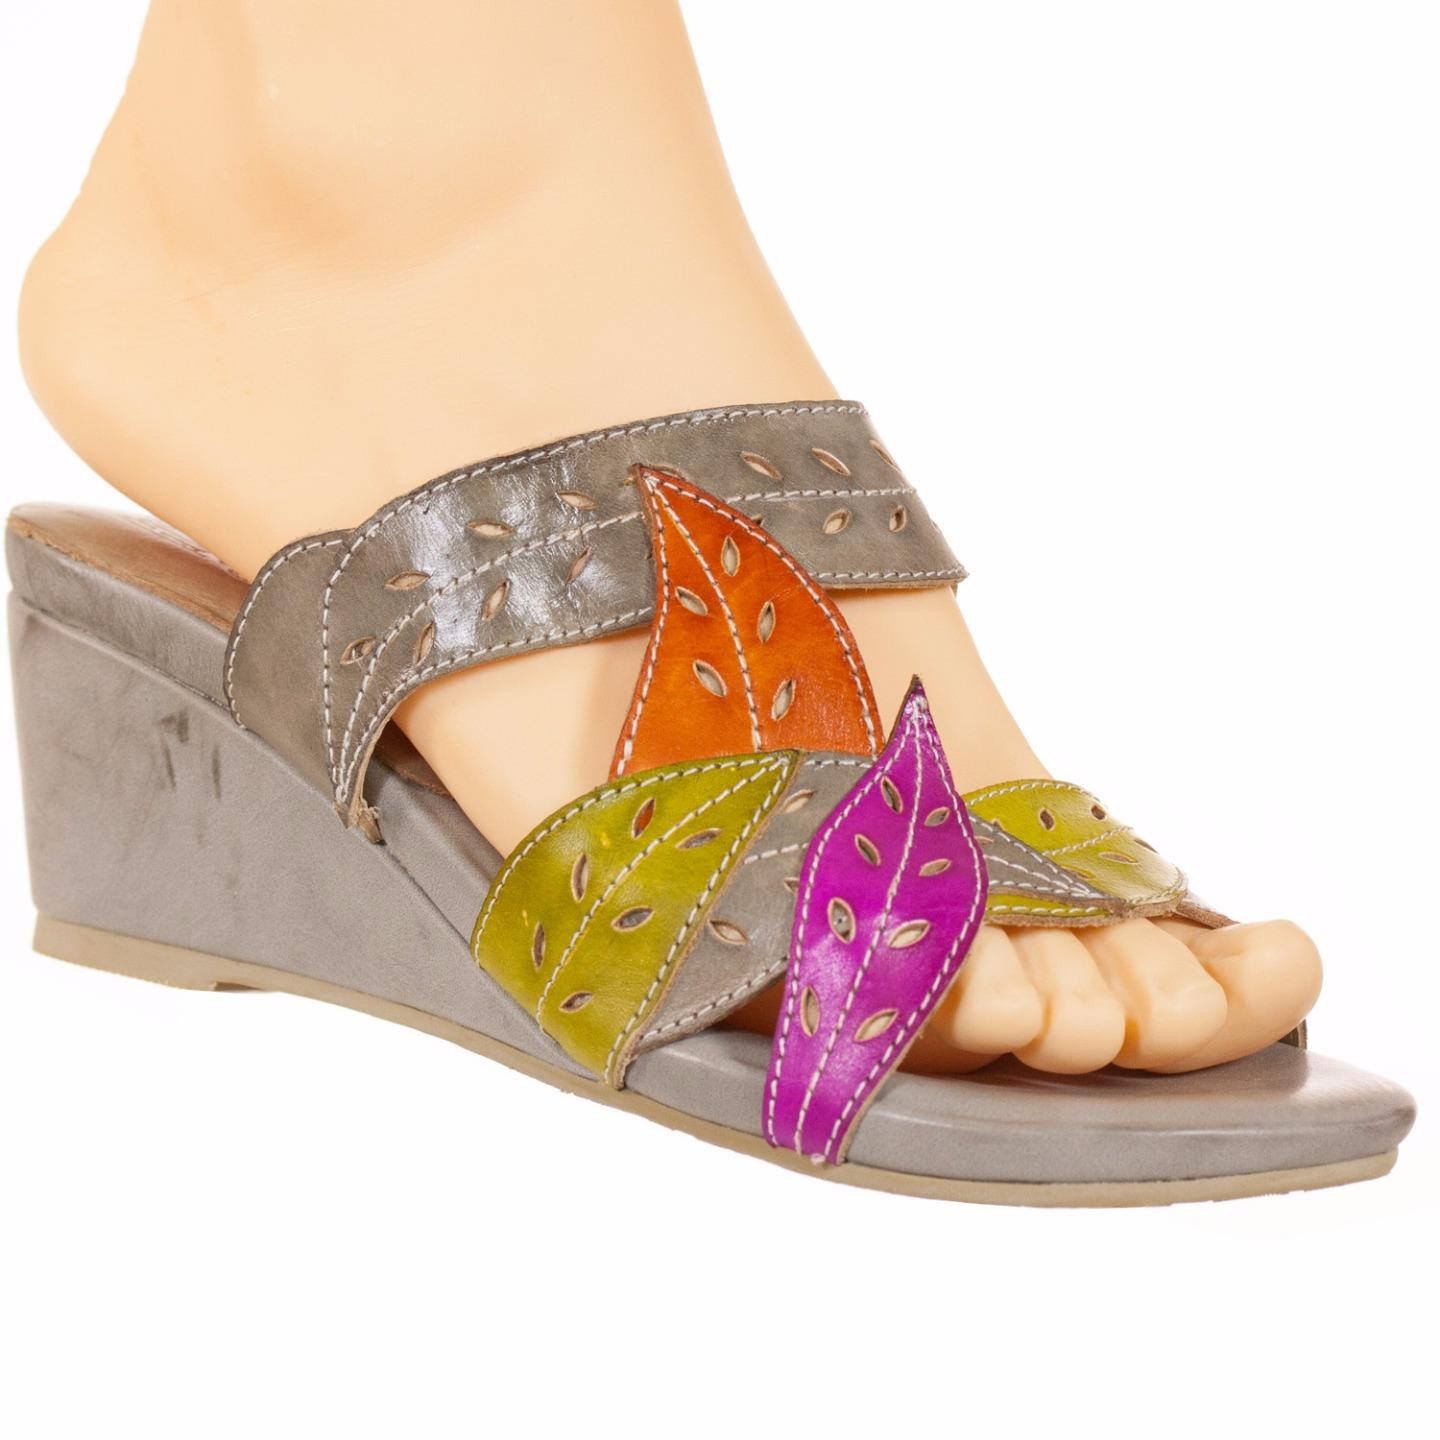 Bernice Spring Sandals Step L'Artiste Collection Women's Sandals Spring Grey Multi EU 37 US 7 bc3a28